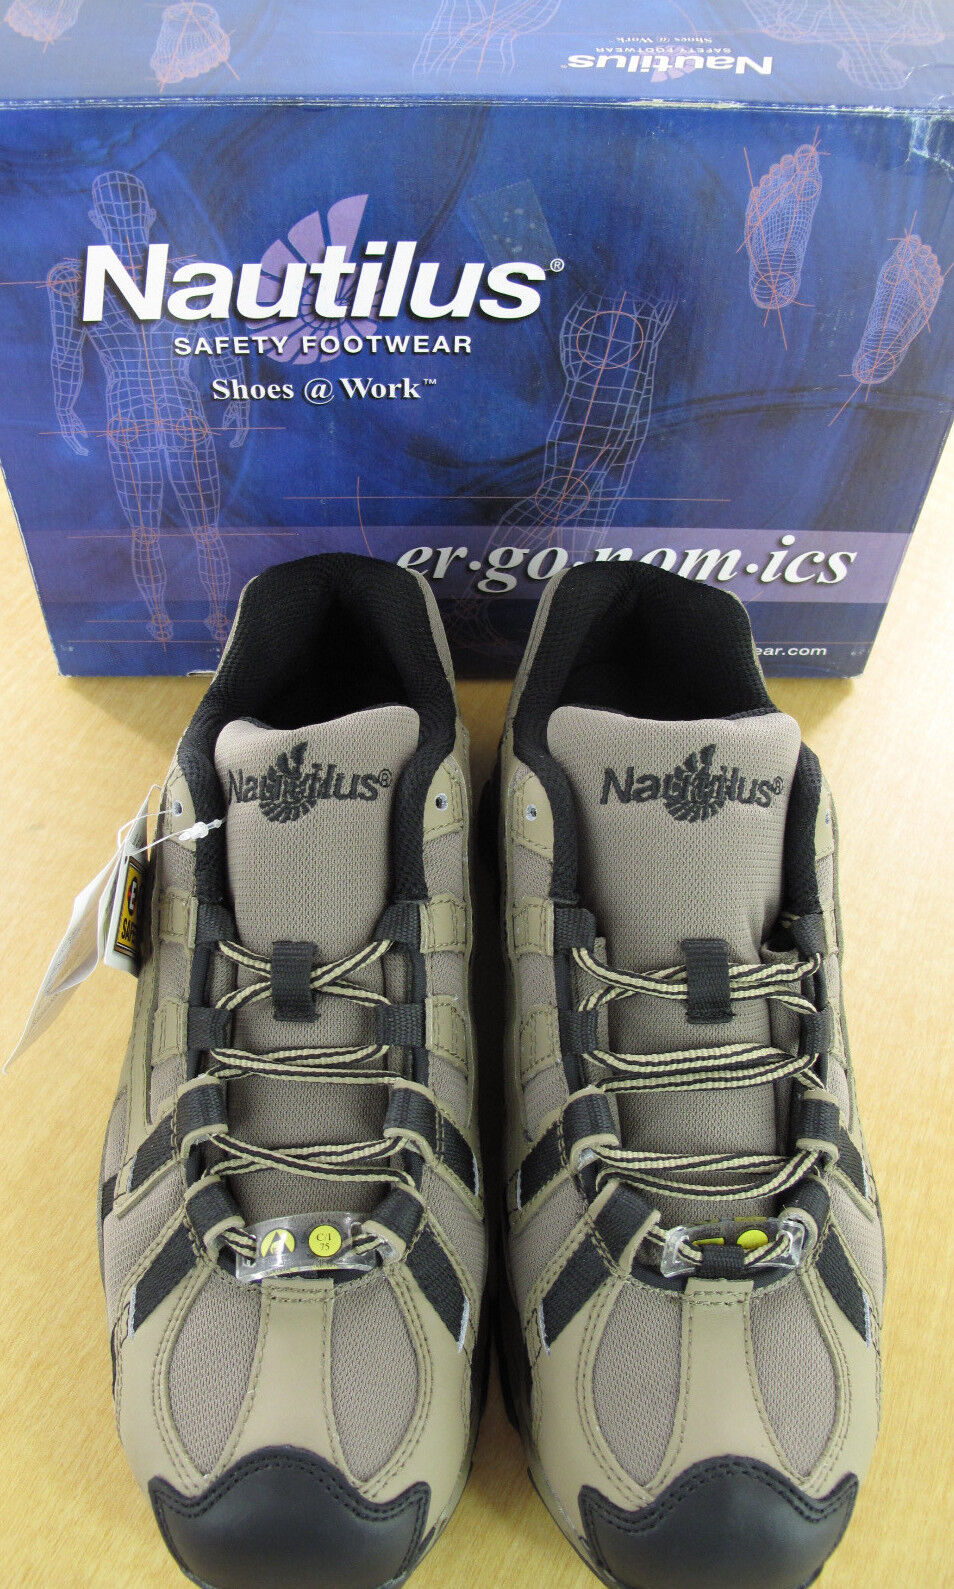 NAUTILUS Safety Footwear N1318 Alloy Lite Toe - - Toe Khaki/Black 9901c5